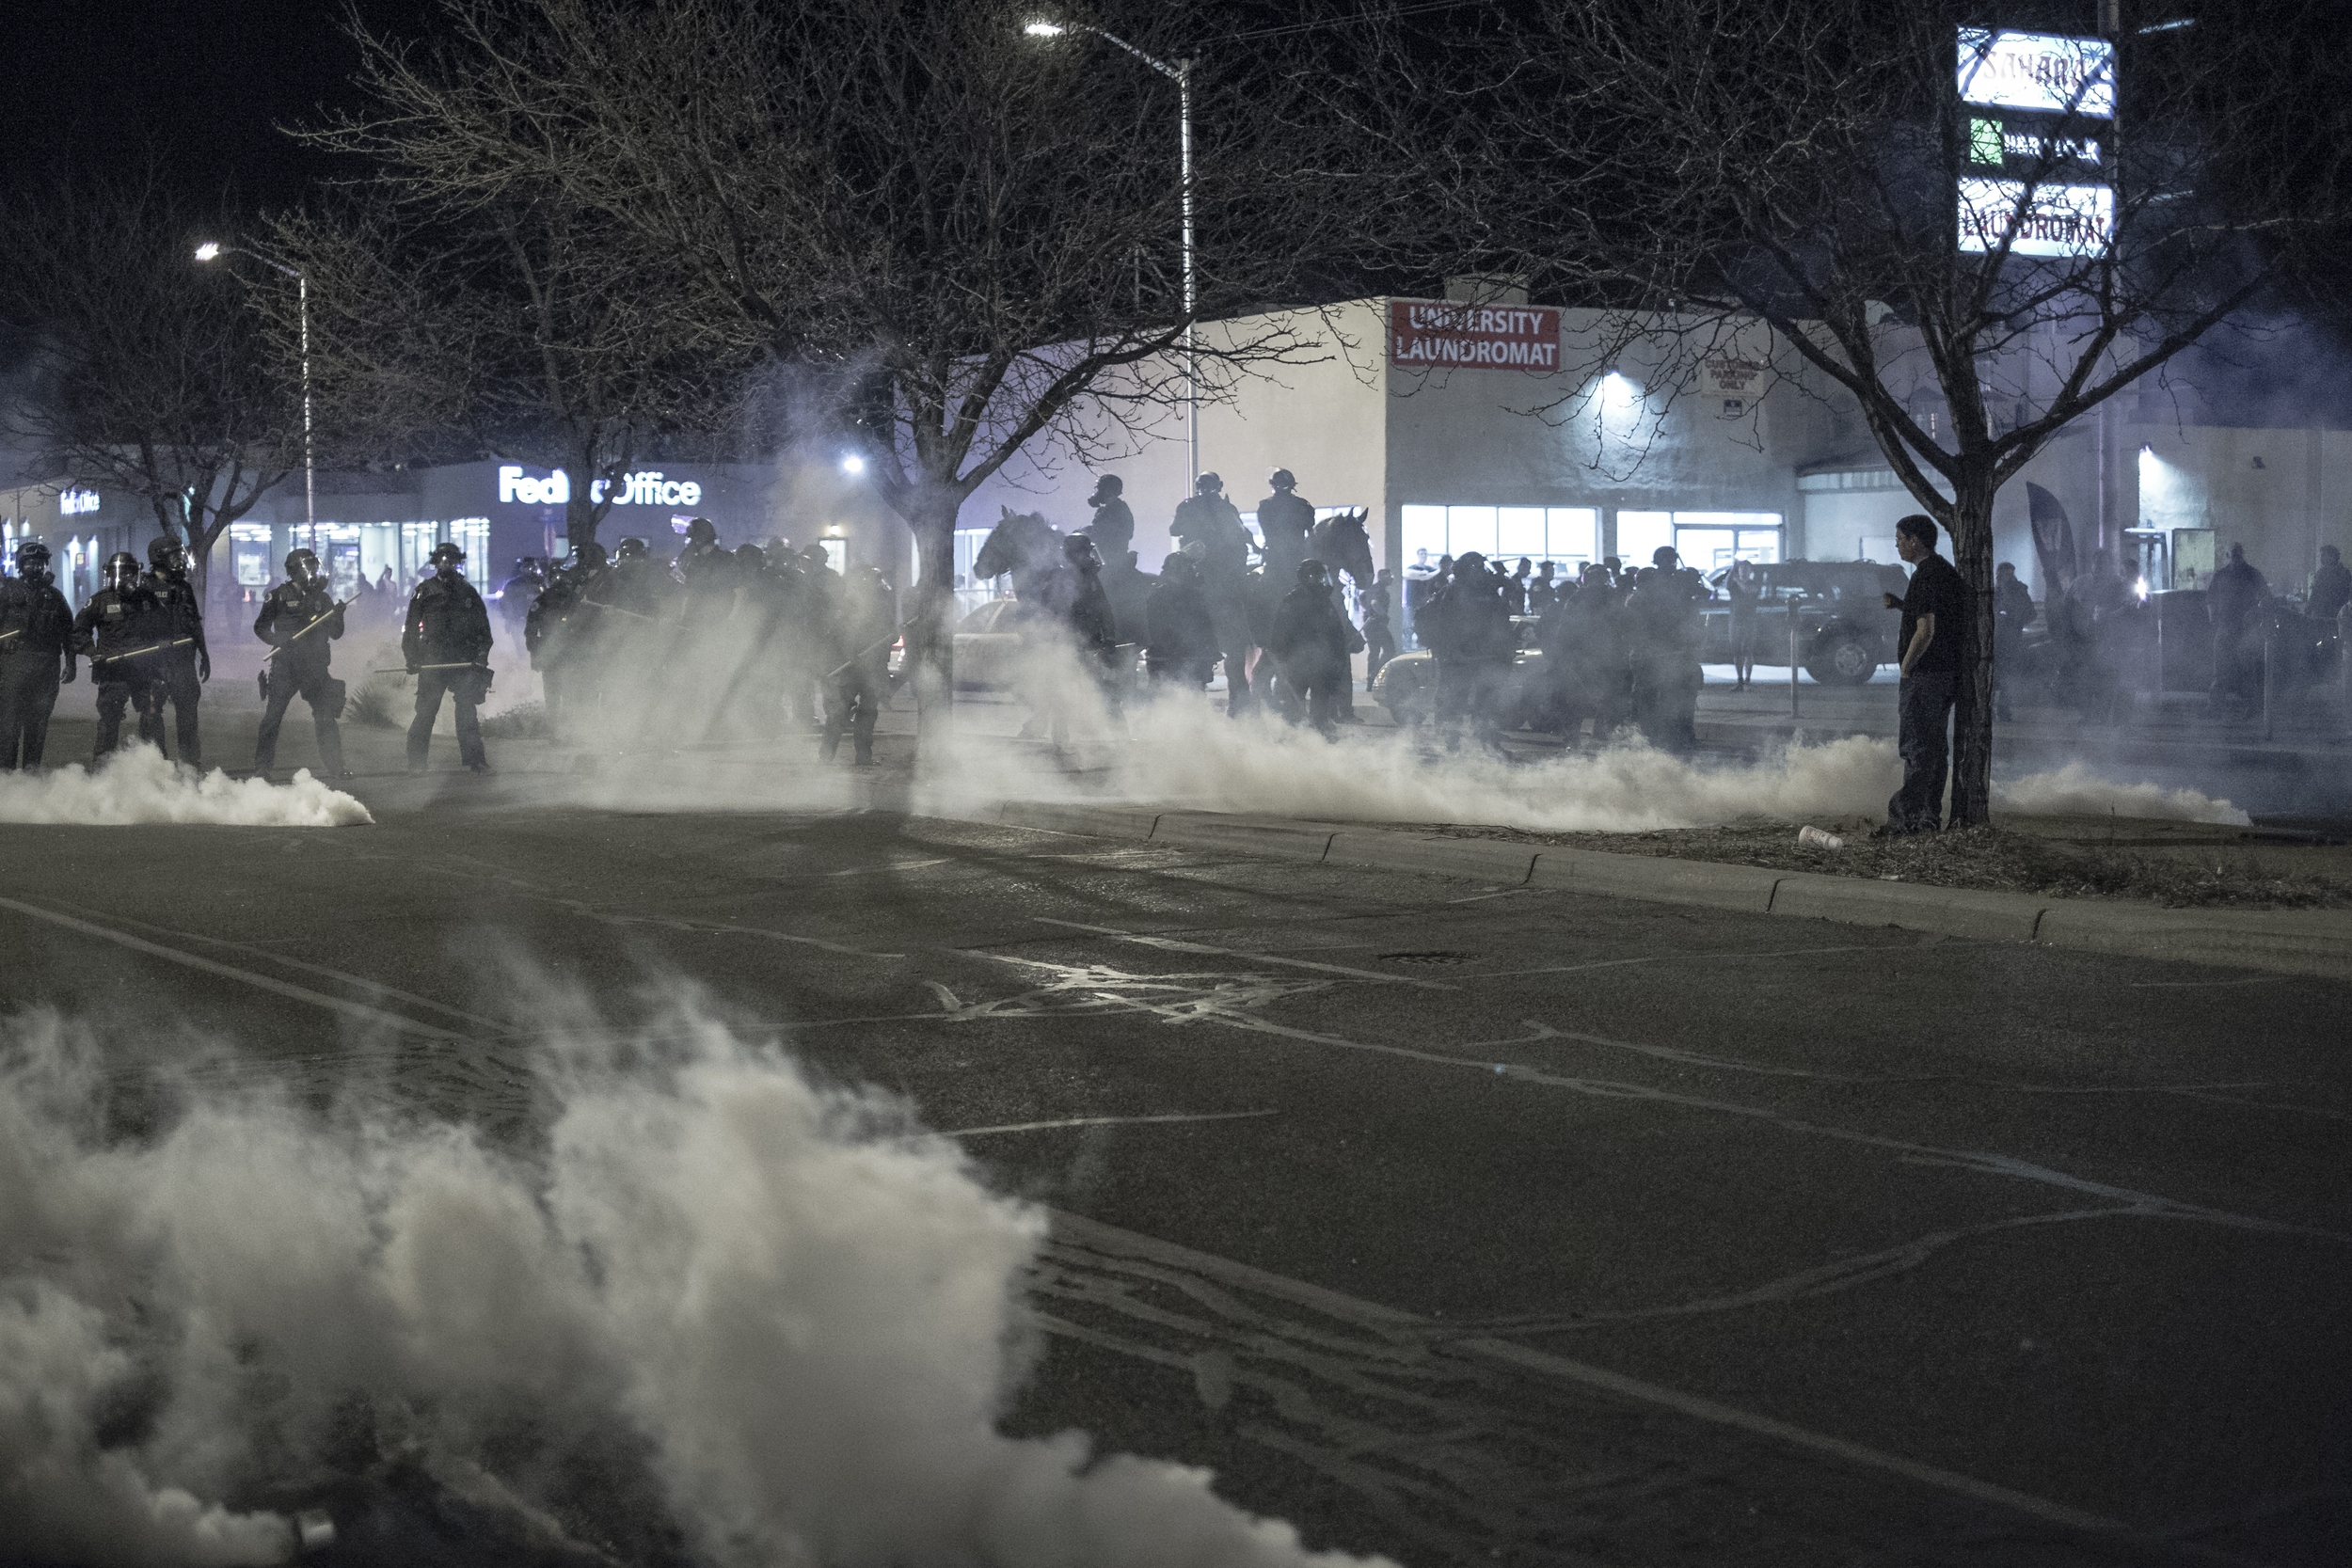 A scene from the Albuquerque protest over a questionable police shooting on March 29th, 2013.